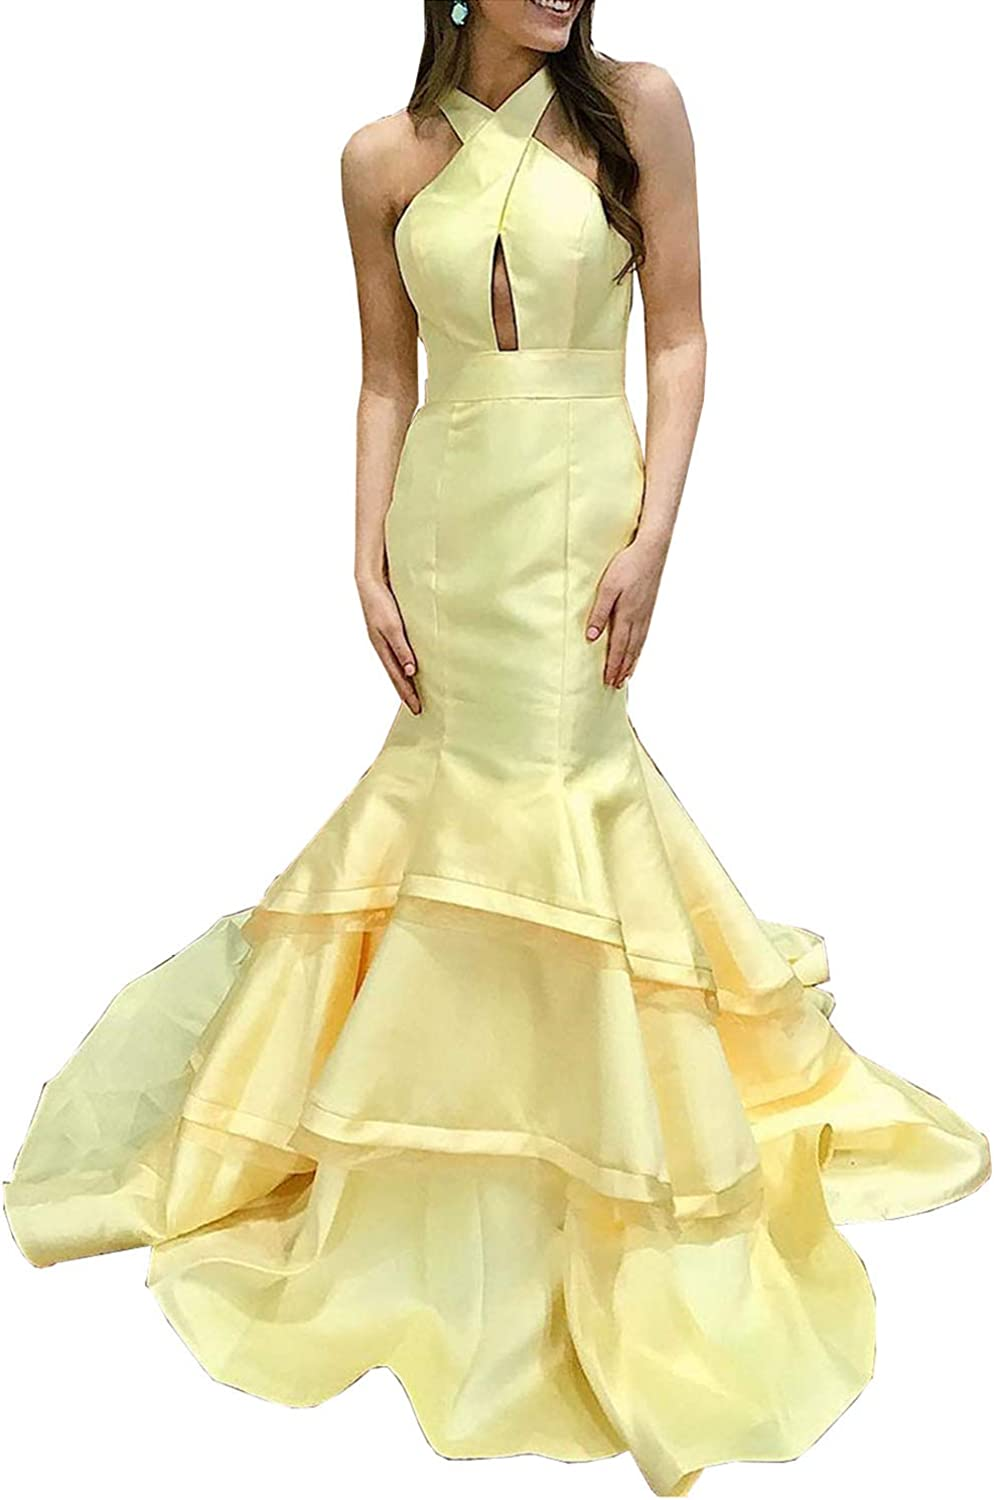 Scarisee Womens Mermaid Halter Evening Dresses Tiers Formal Prom Party Gowns KeyholeSA128